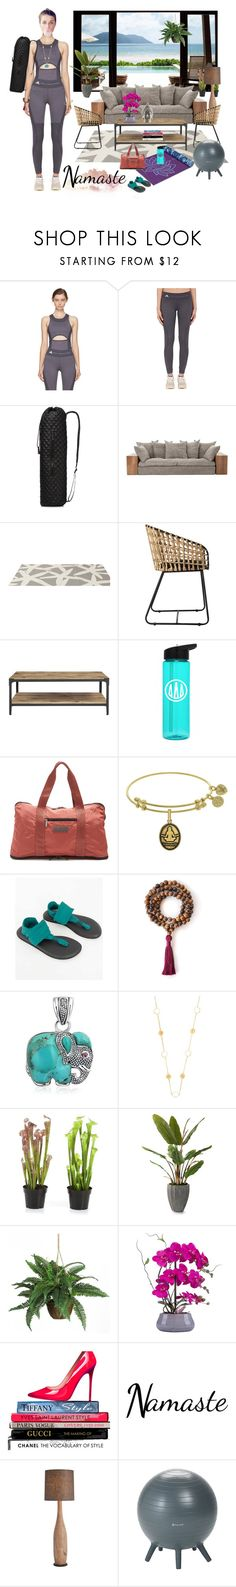 """""""Yoga"""" by thymagine ❤ liked on Polyvore featuring adidas, M Z Wallace, Somerset Bay, Gaiam, sanuk, Bling Jewelry, Rebecca Joseph, John-Richard and Nearly Natural"""